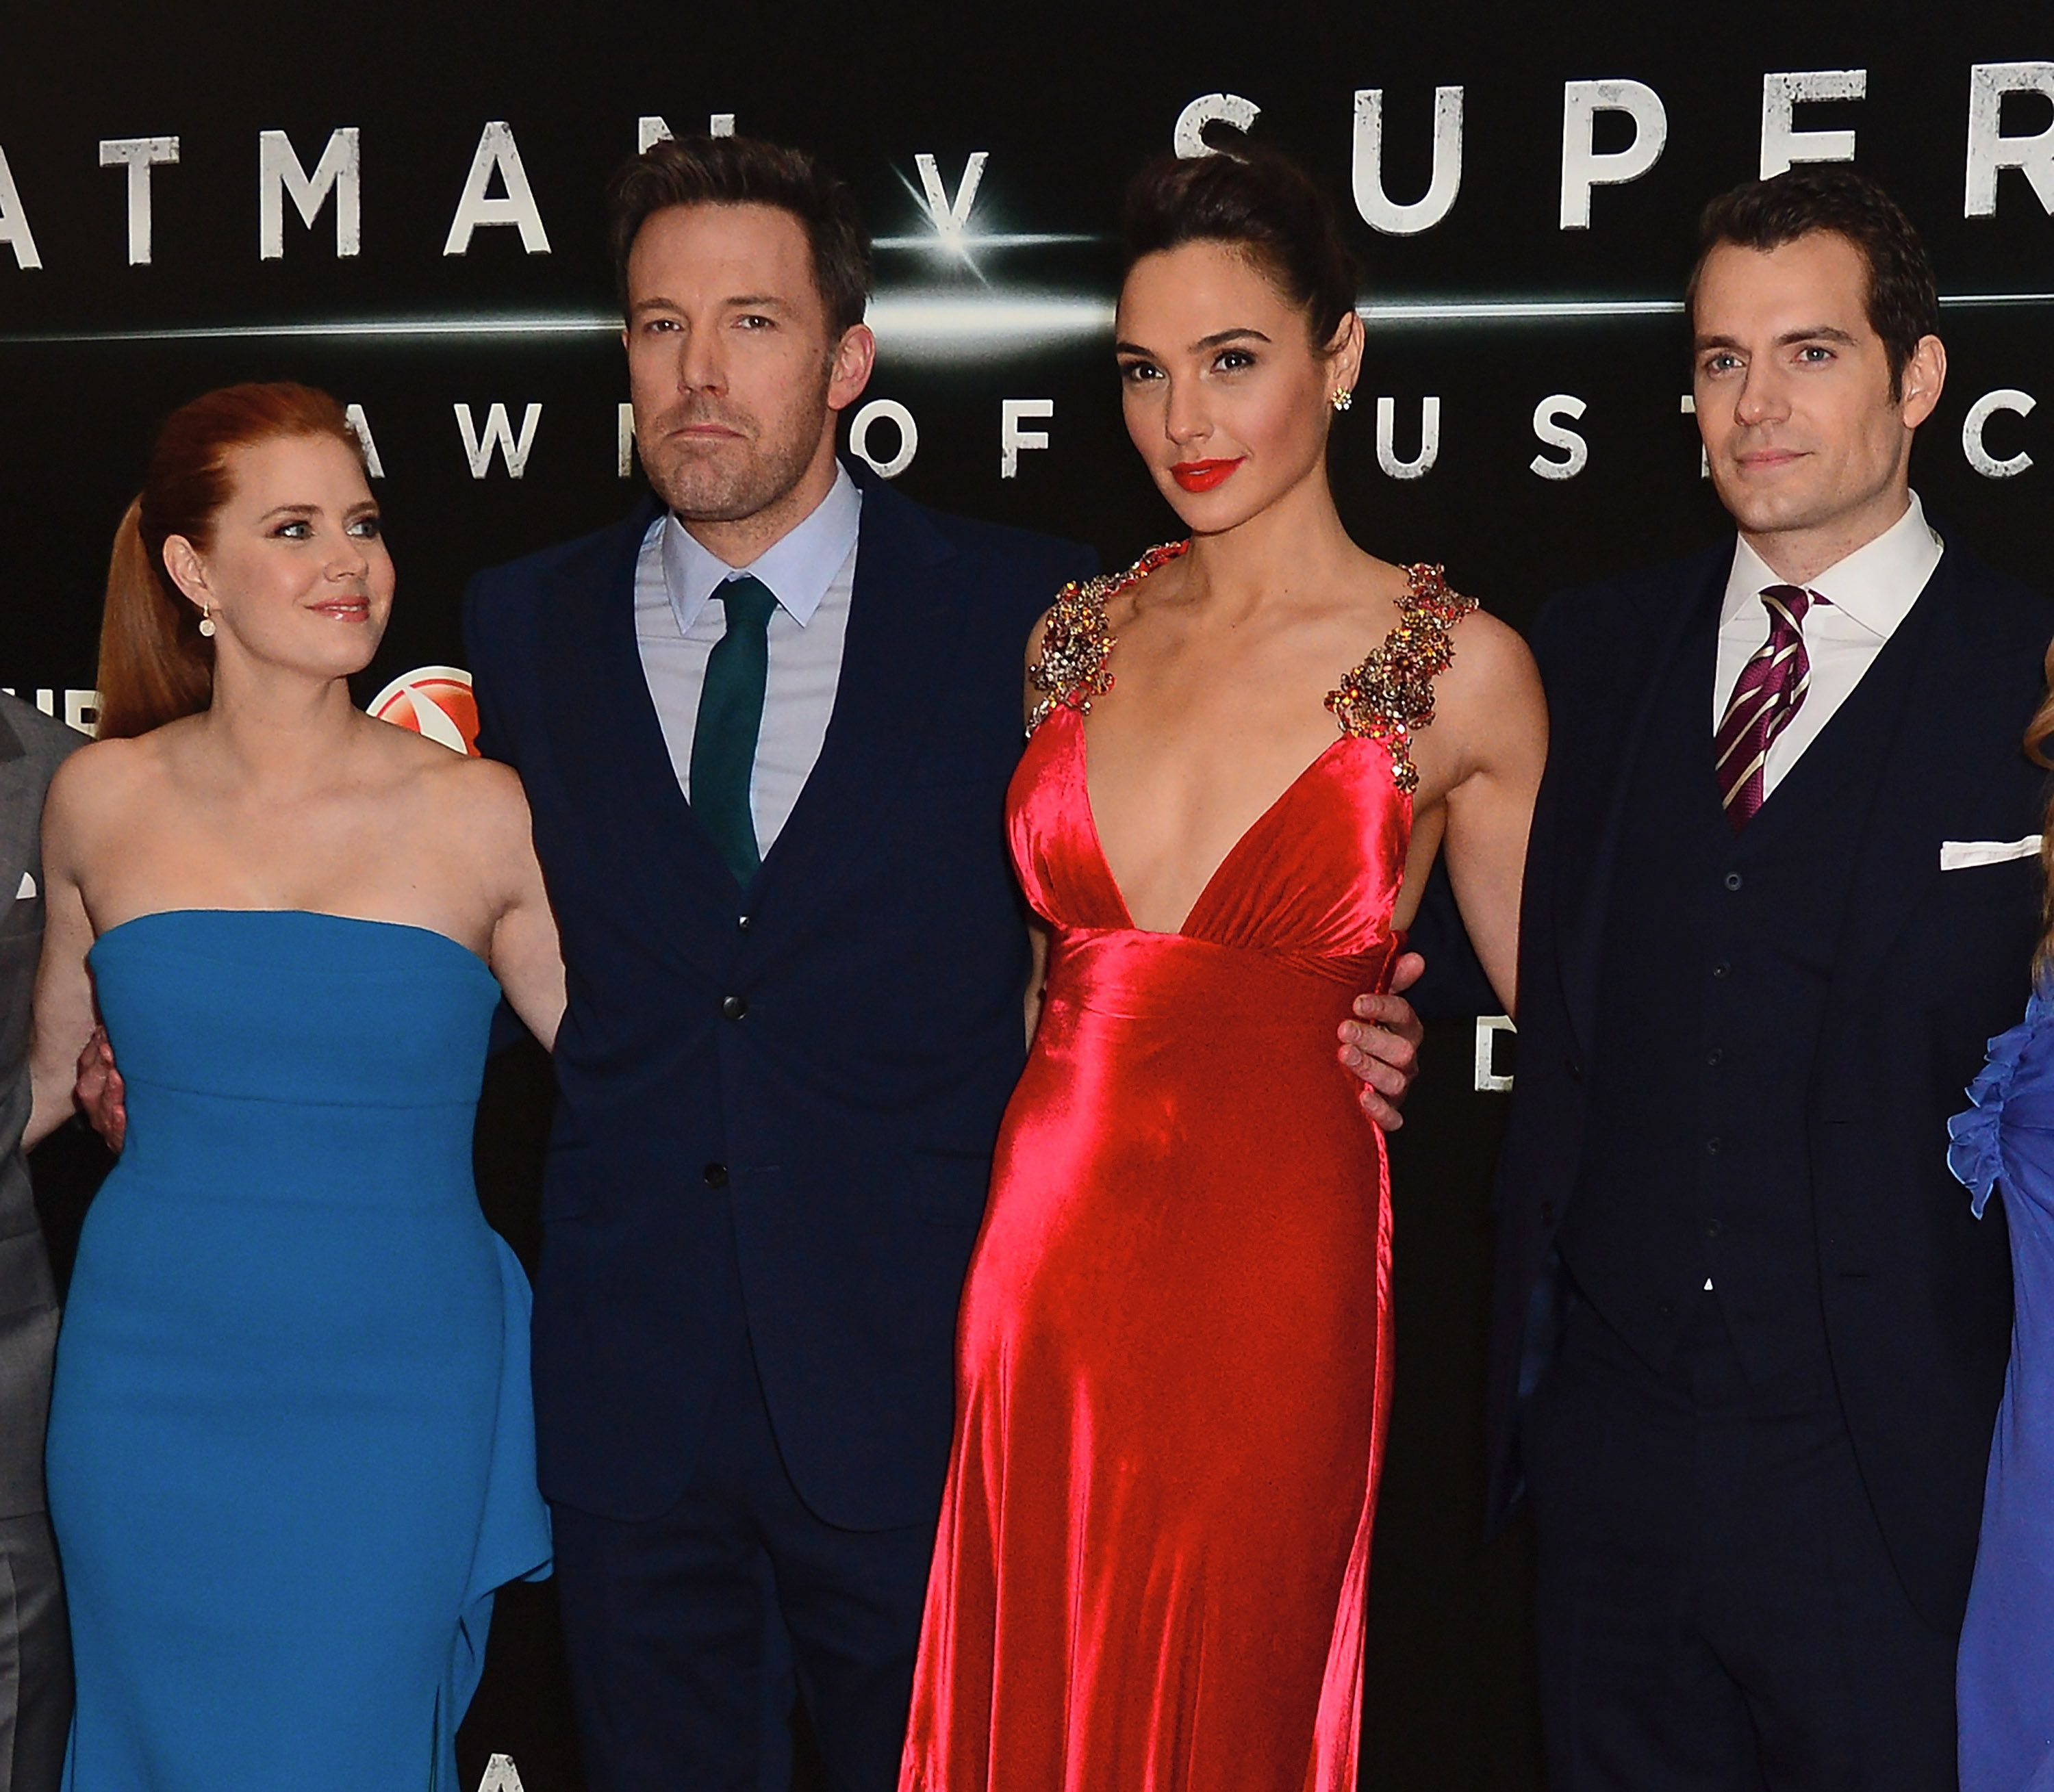 LONDON, ENGLAND - MARCH 22:  (L-R) Amy Adams, Ben Affleck, Gal Gadot and Henry Cavill attend the European Premiere of 'Batman V Superman: Dawn Of Justice' at Odeon Leicester Square on March 22, 2016 in London, England.  (Photo by David M. Benett/Dave Benett/WireImage)